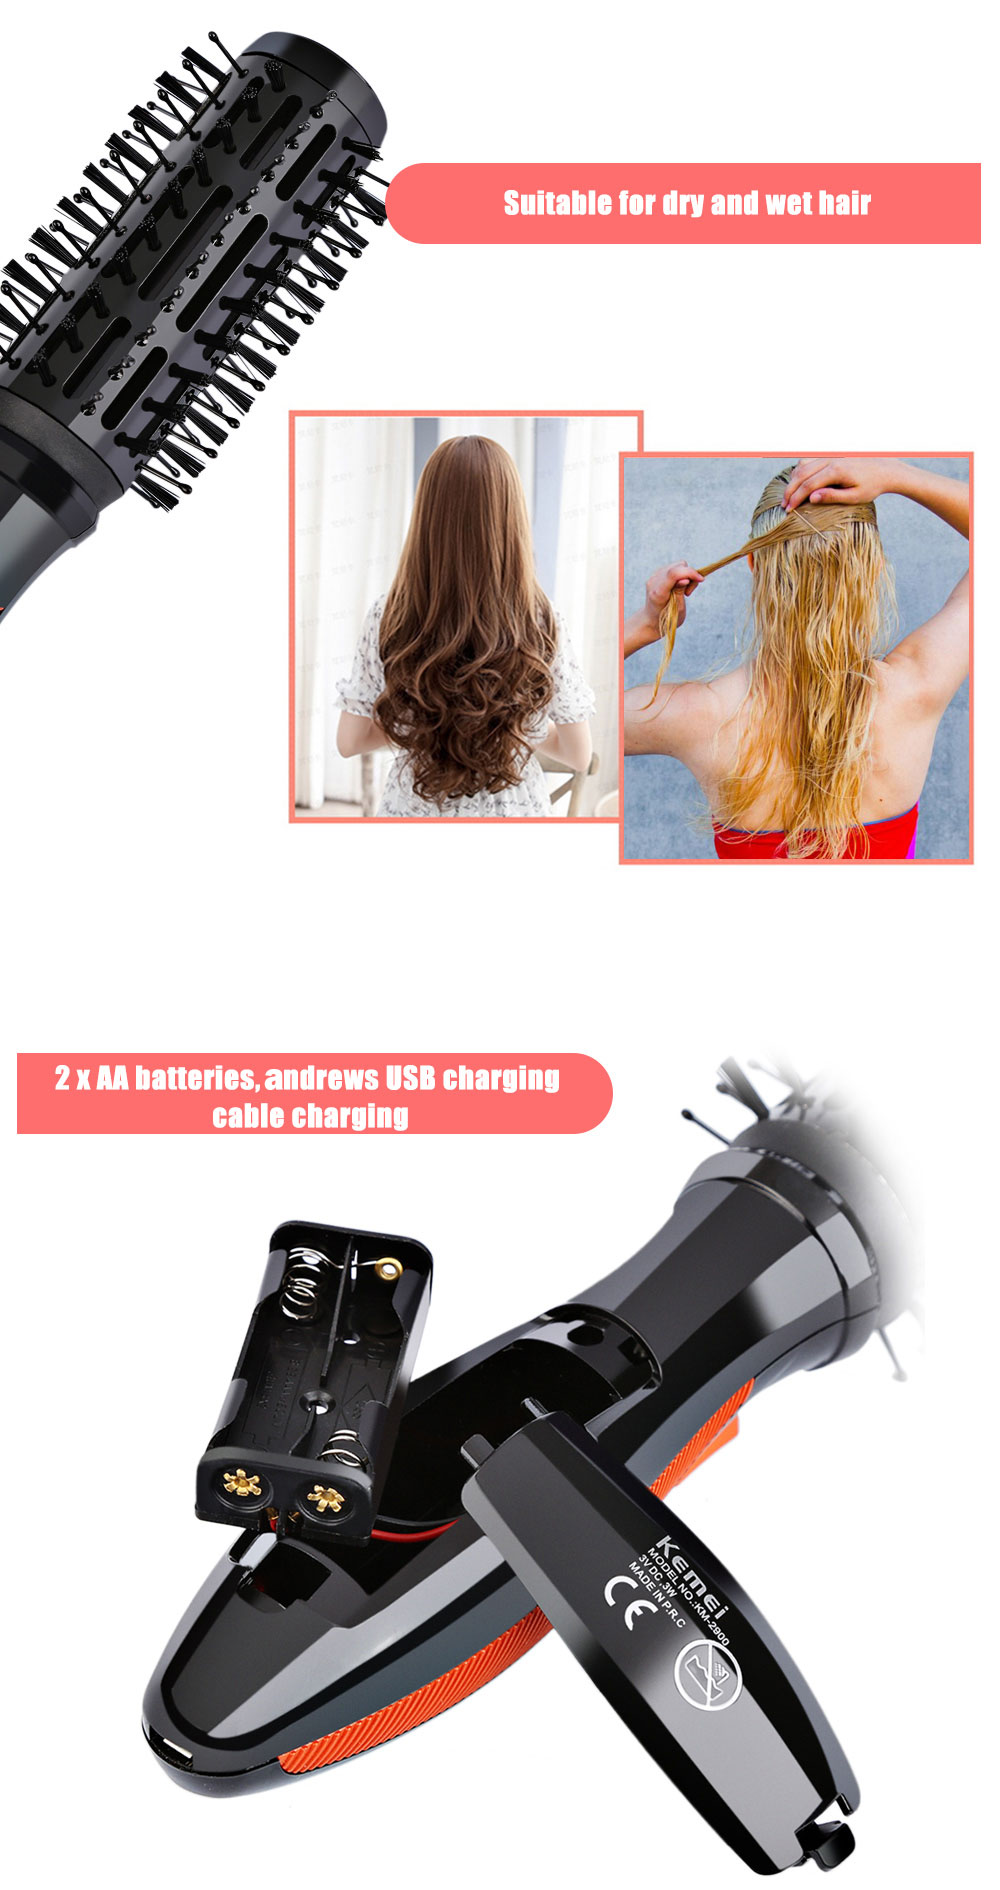 Kemei KM - 2900 Electric Curling Dual-use Rotatable Massage Comb